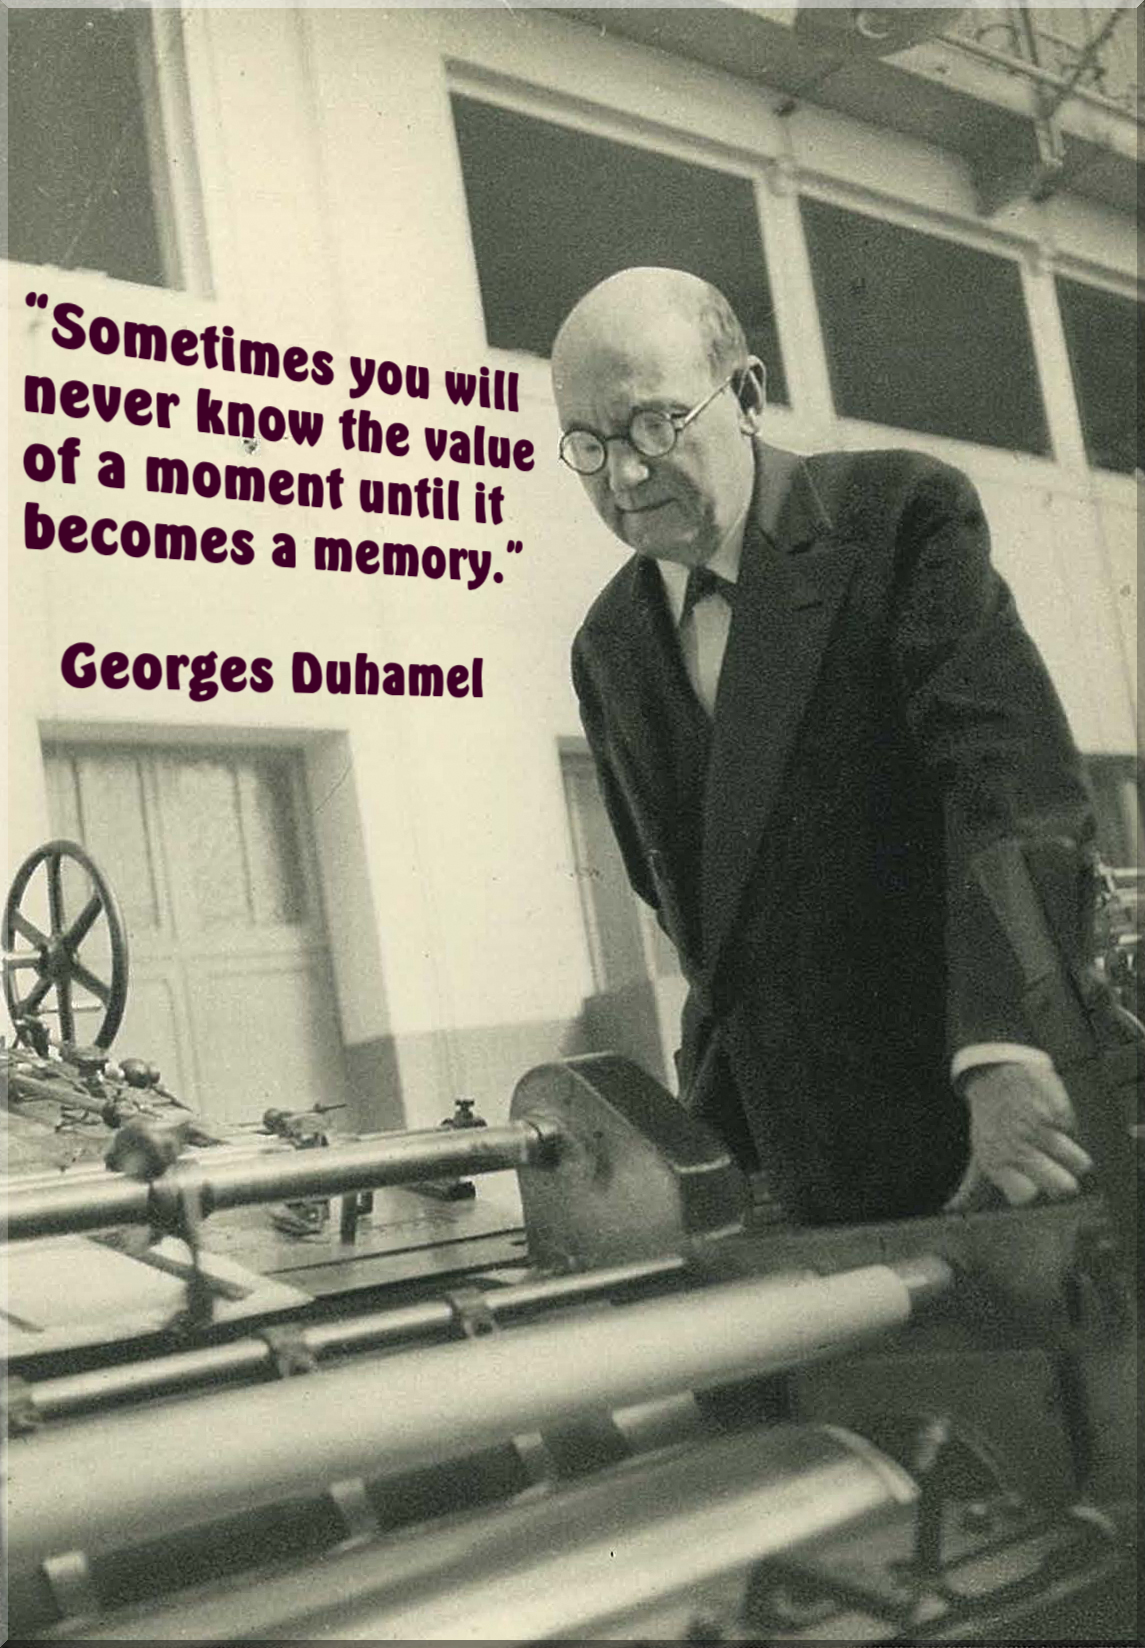 """Sometimes you will never know the value of a moment until it becomes a memory."" – Georges Duhamel [1145×1648]"